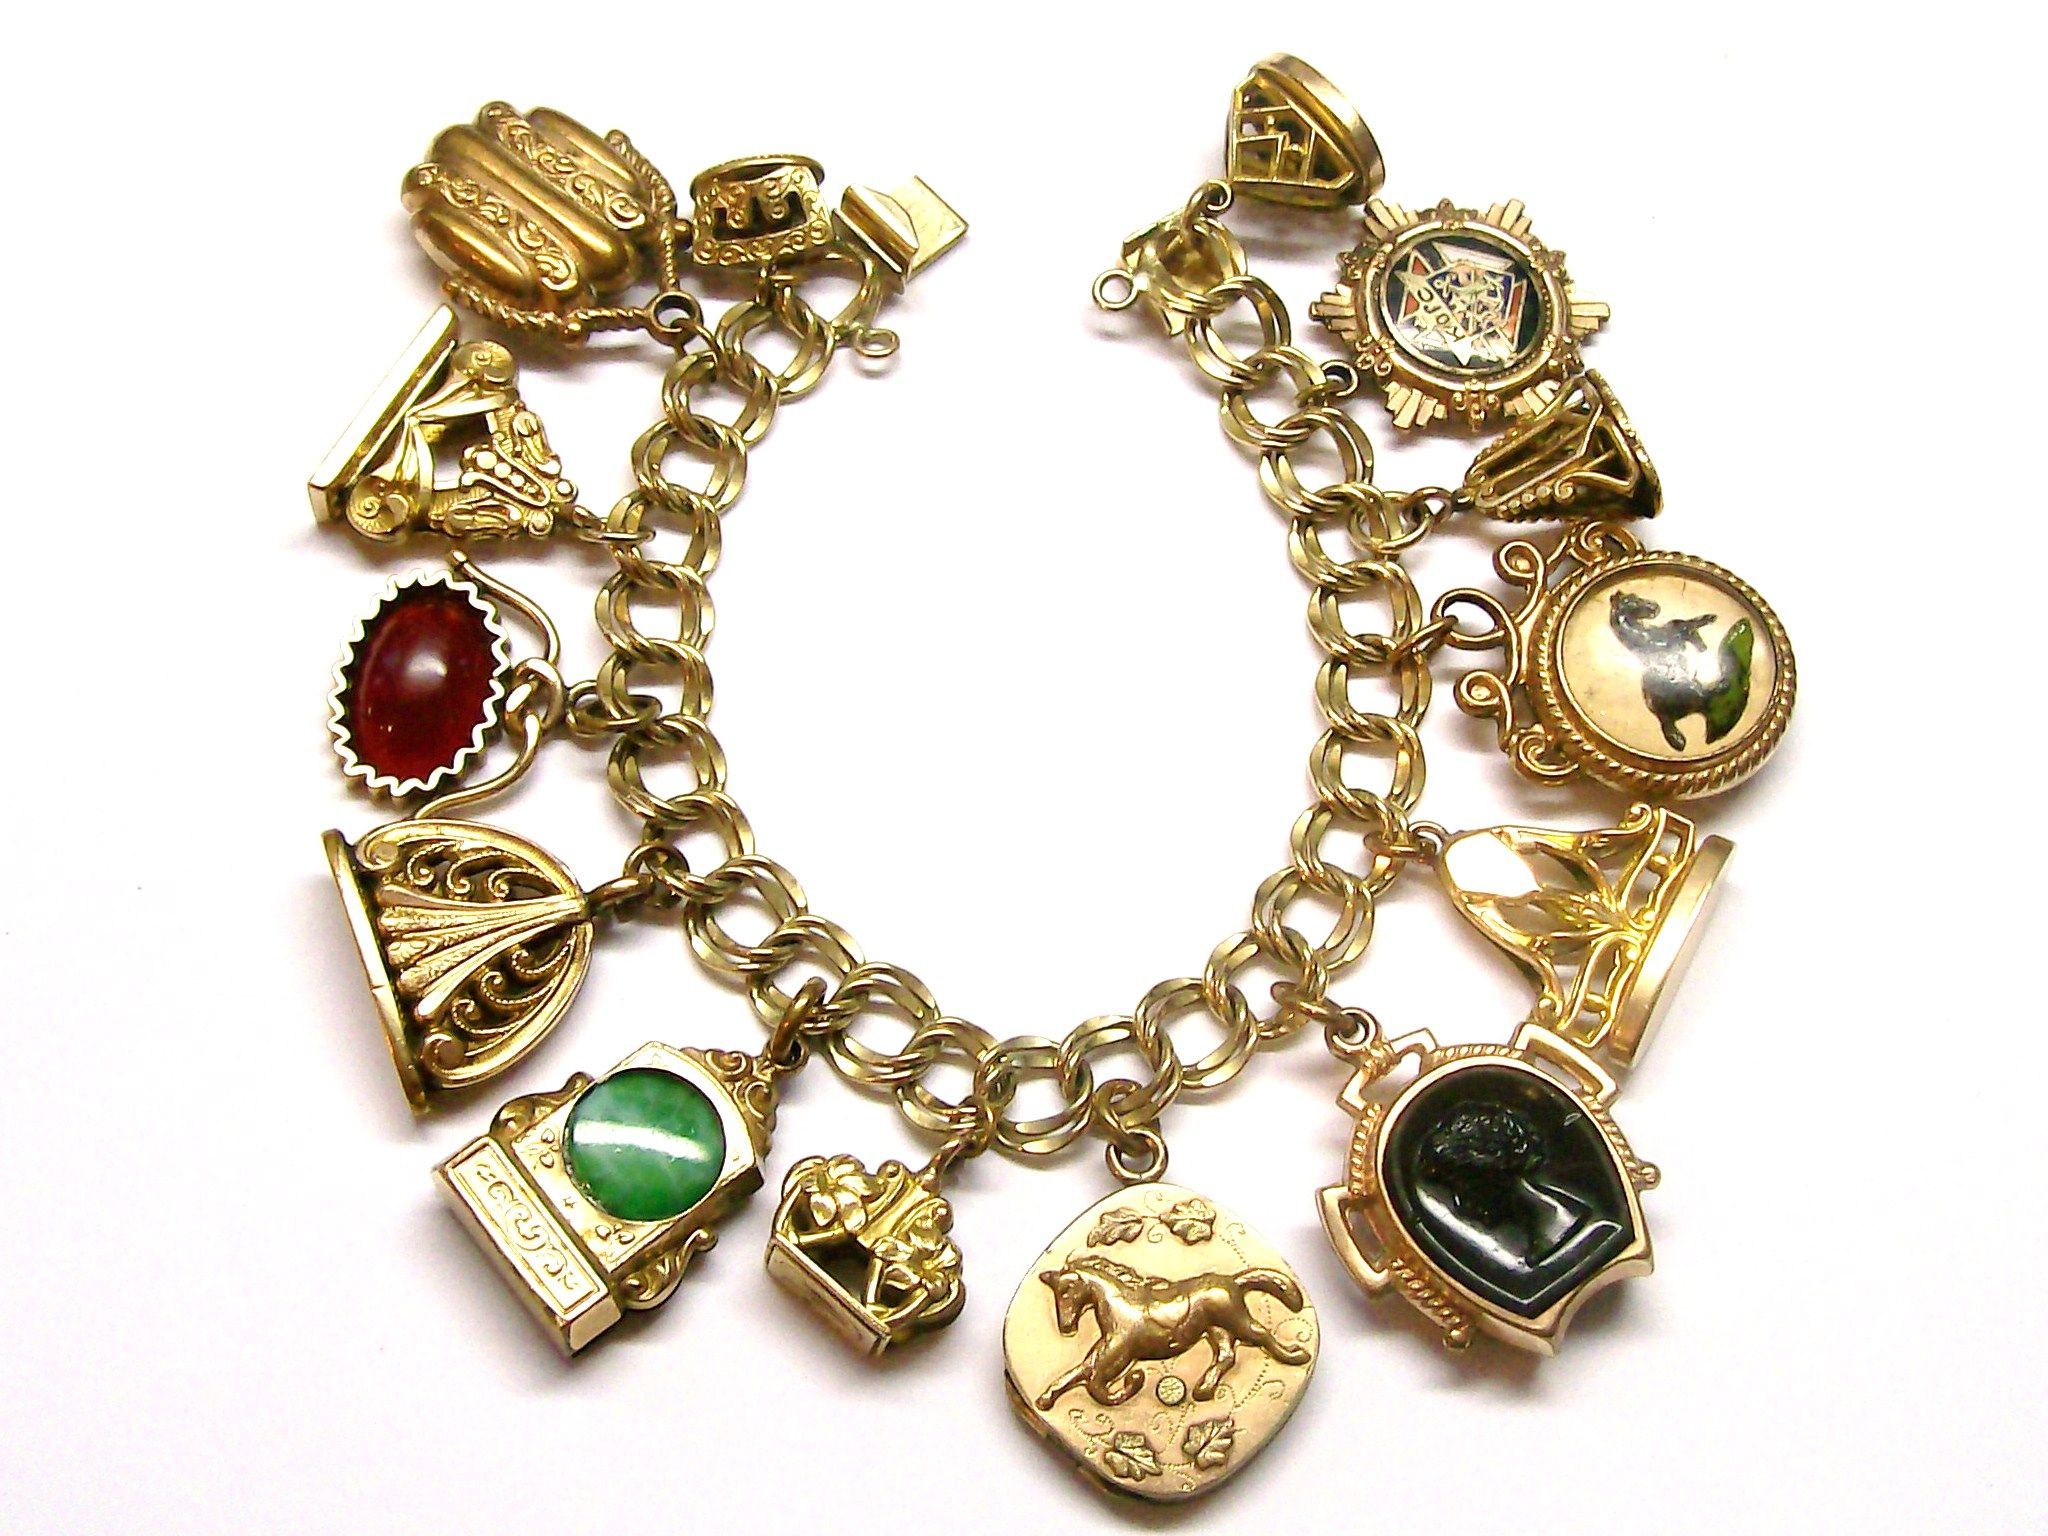 My Antique Watch Fob Bracelet